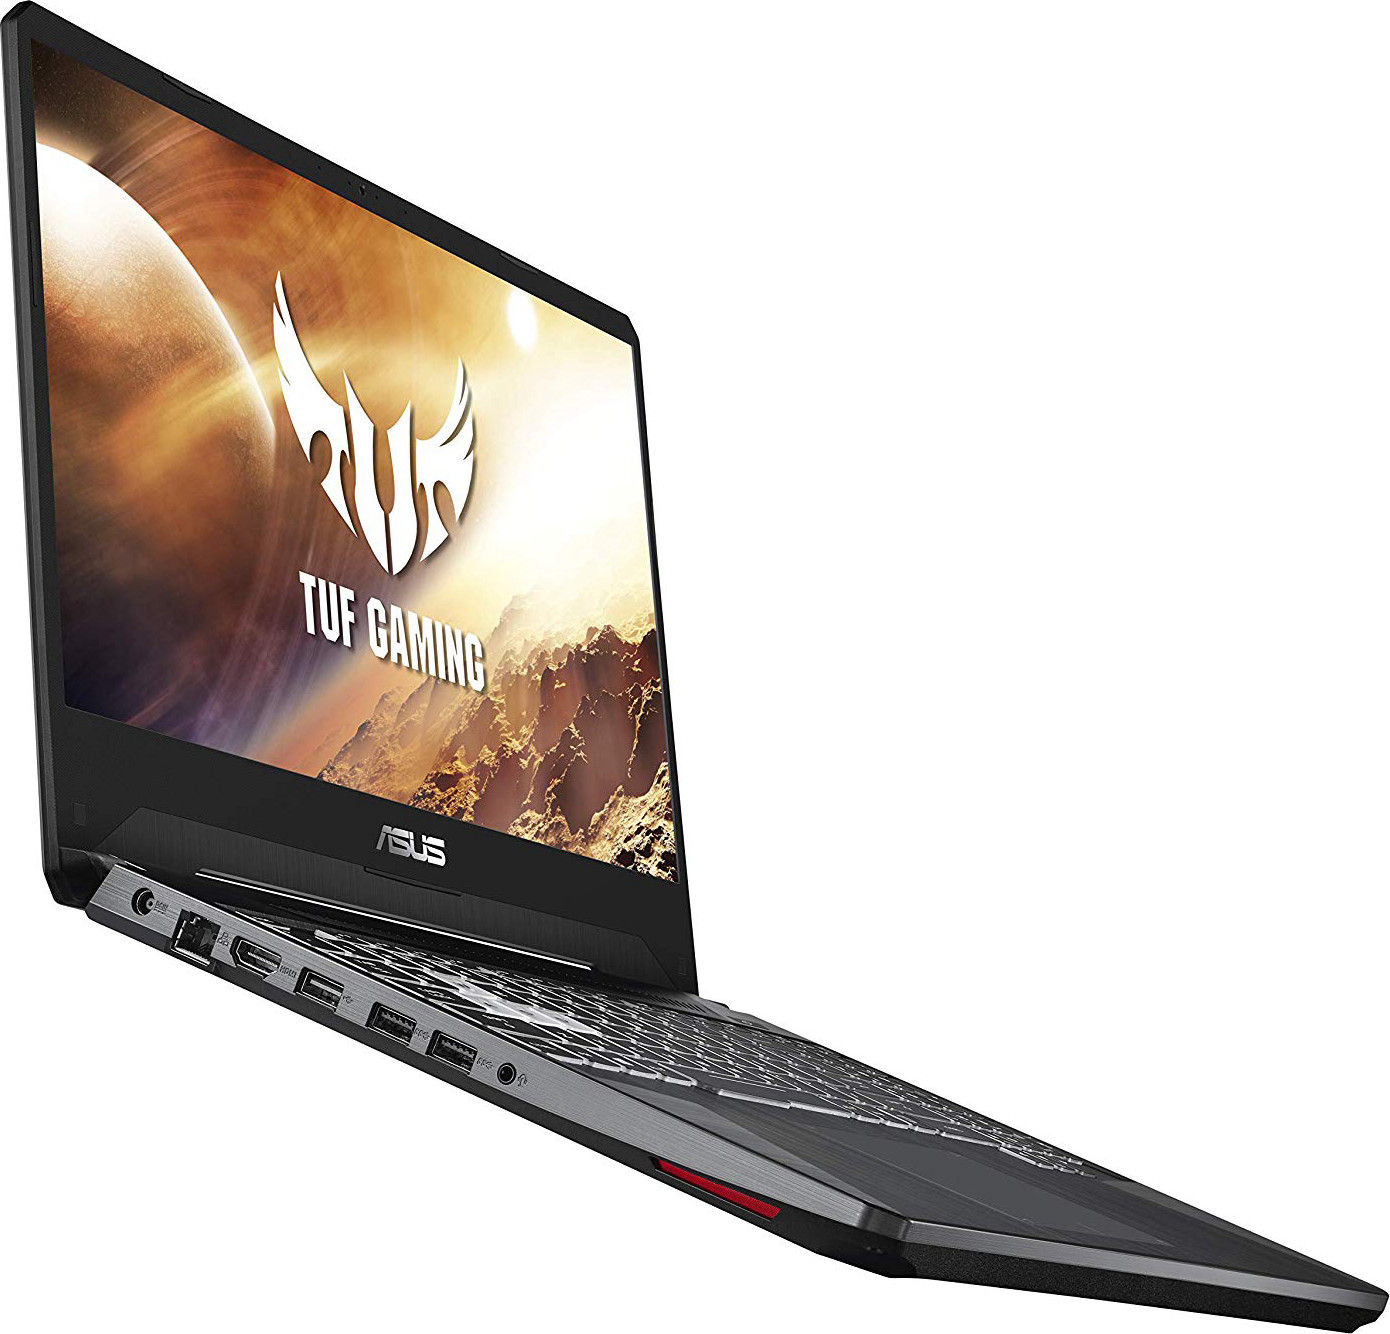 "ASUS TUF (2019) Gaming Laptop, 15.6"" 120Hz Full HD IPS-Type, AMD Ryzen 7 3750H, GeForce GTX 1650, 8GB DDR4, 512GB PCIe SSD, Gigabit Wi-Fi 5, Windows 10 Home, FX505DT-EB73"